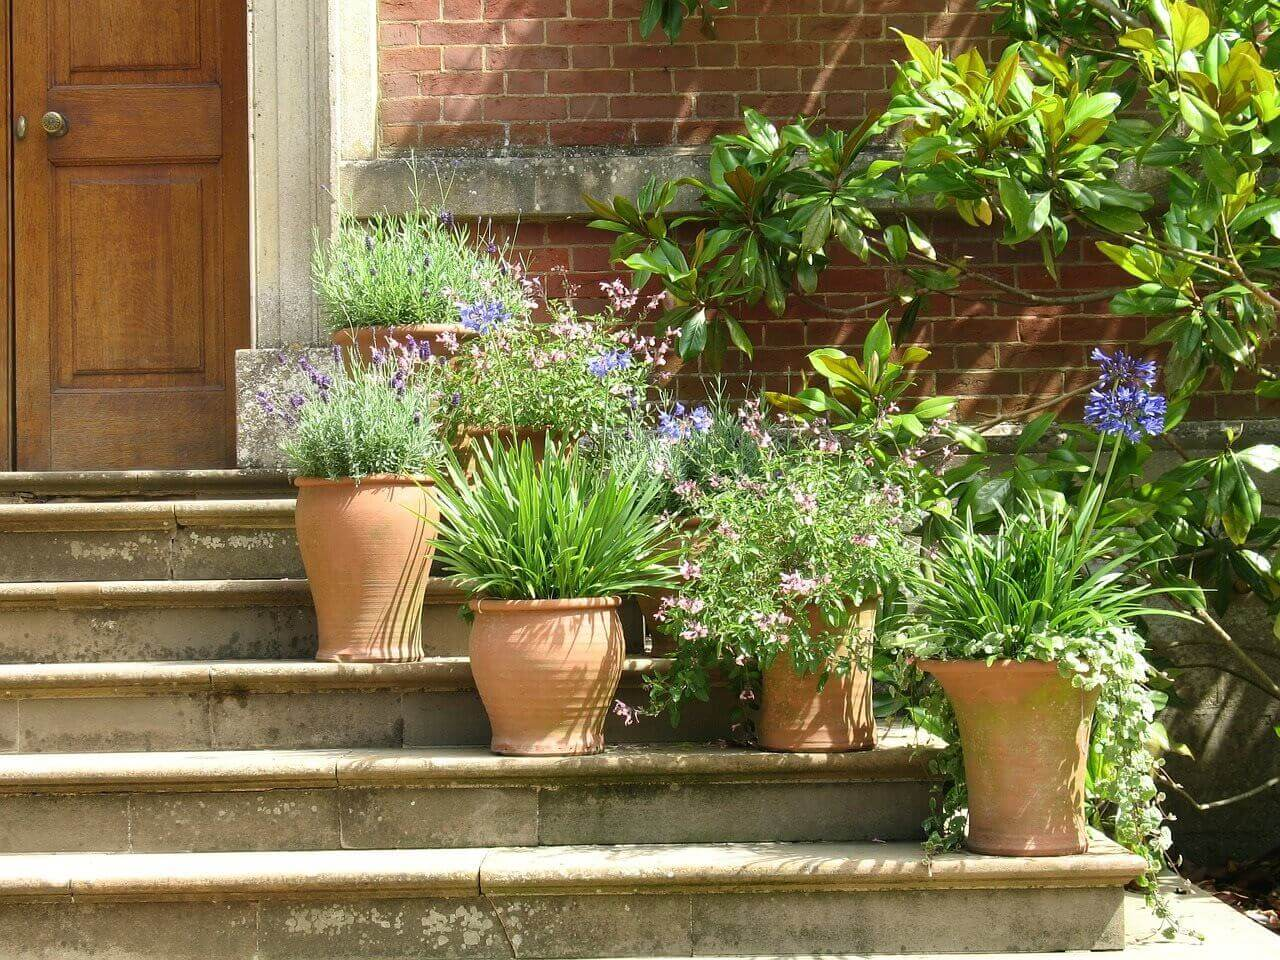 Plants pots on stairs